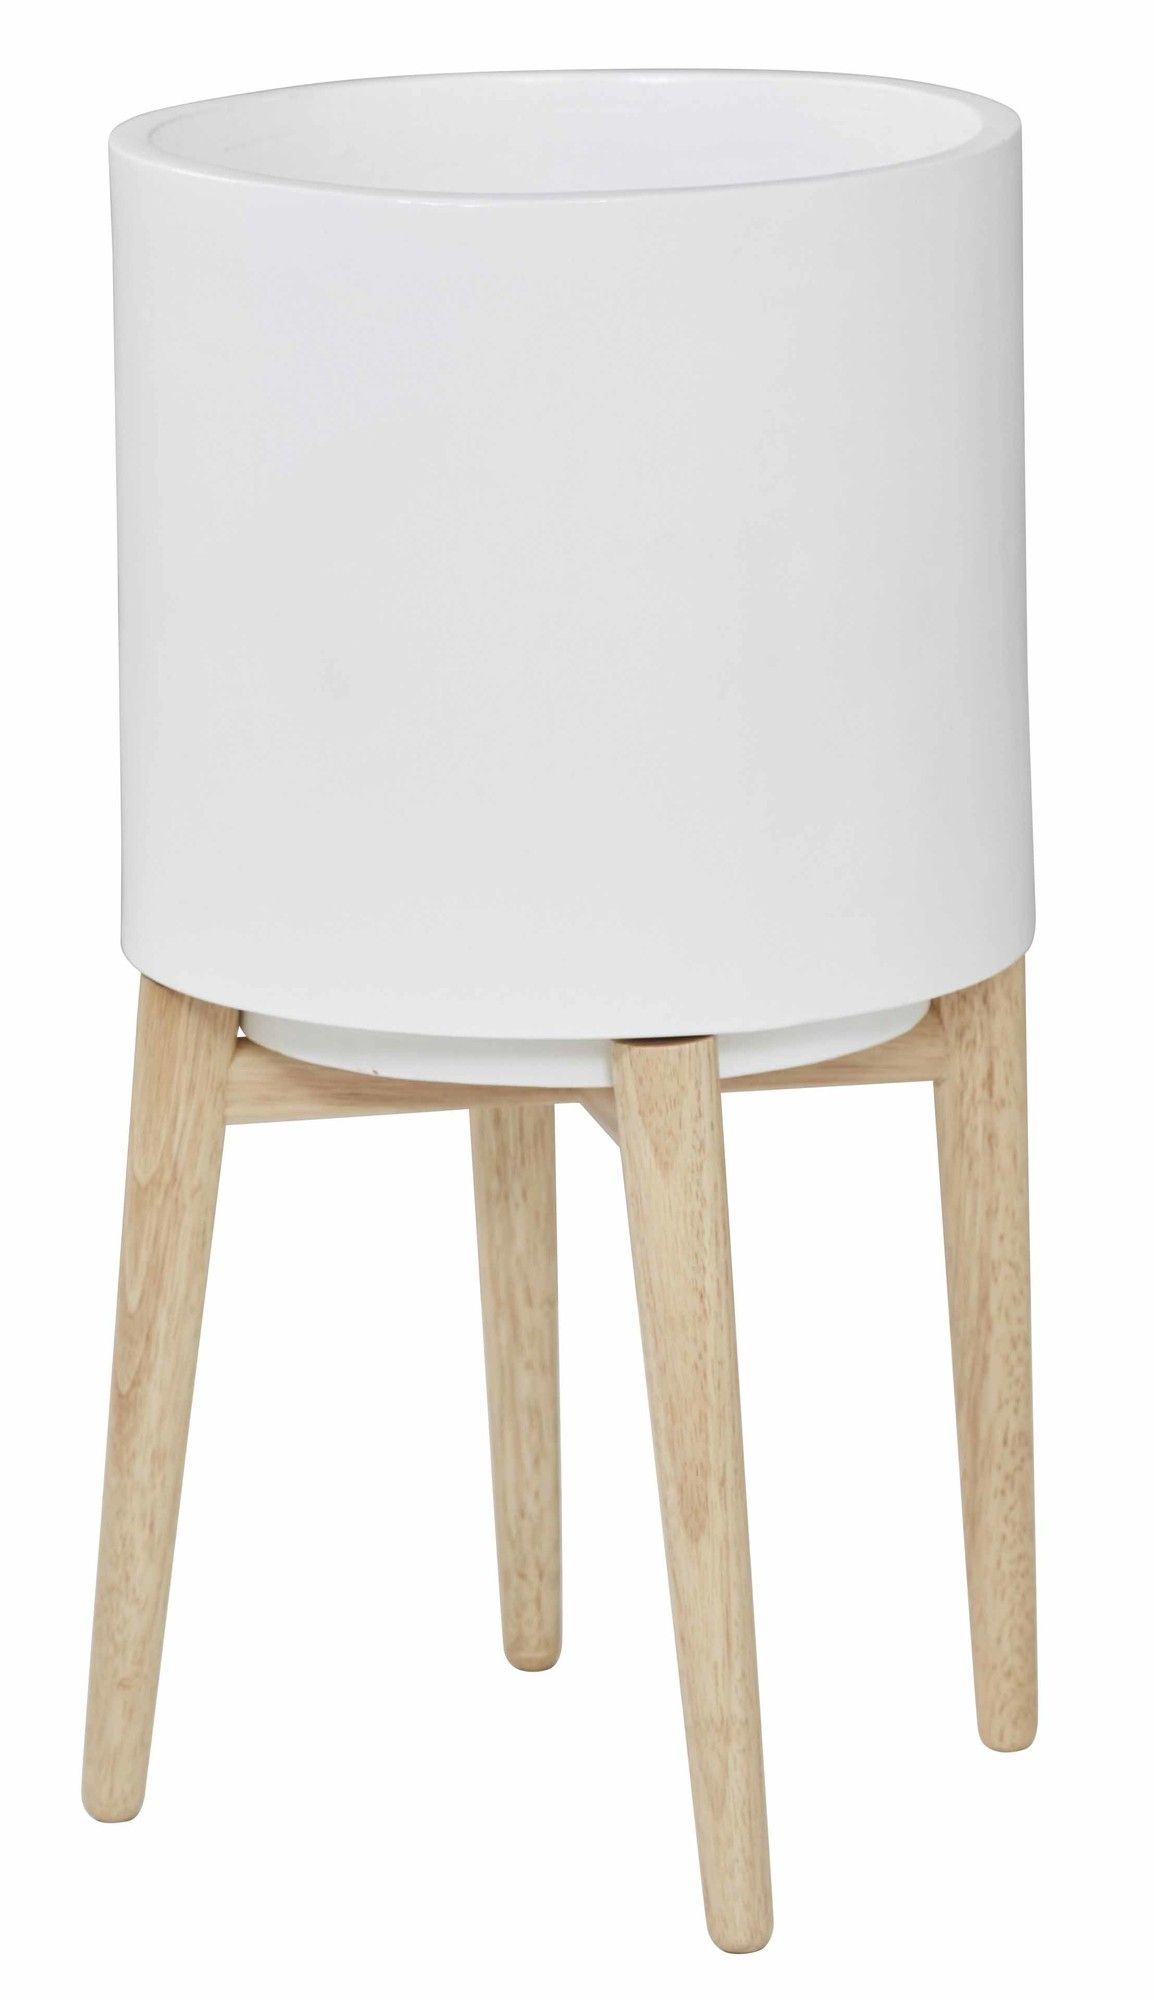 280 Oasis White Planter Pot On Stand Set Of 2 By Amalfi 58 5cm H X 34cm W D Cement Fibre Rubber Wood